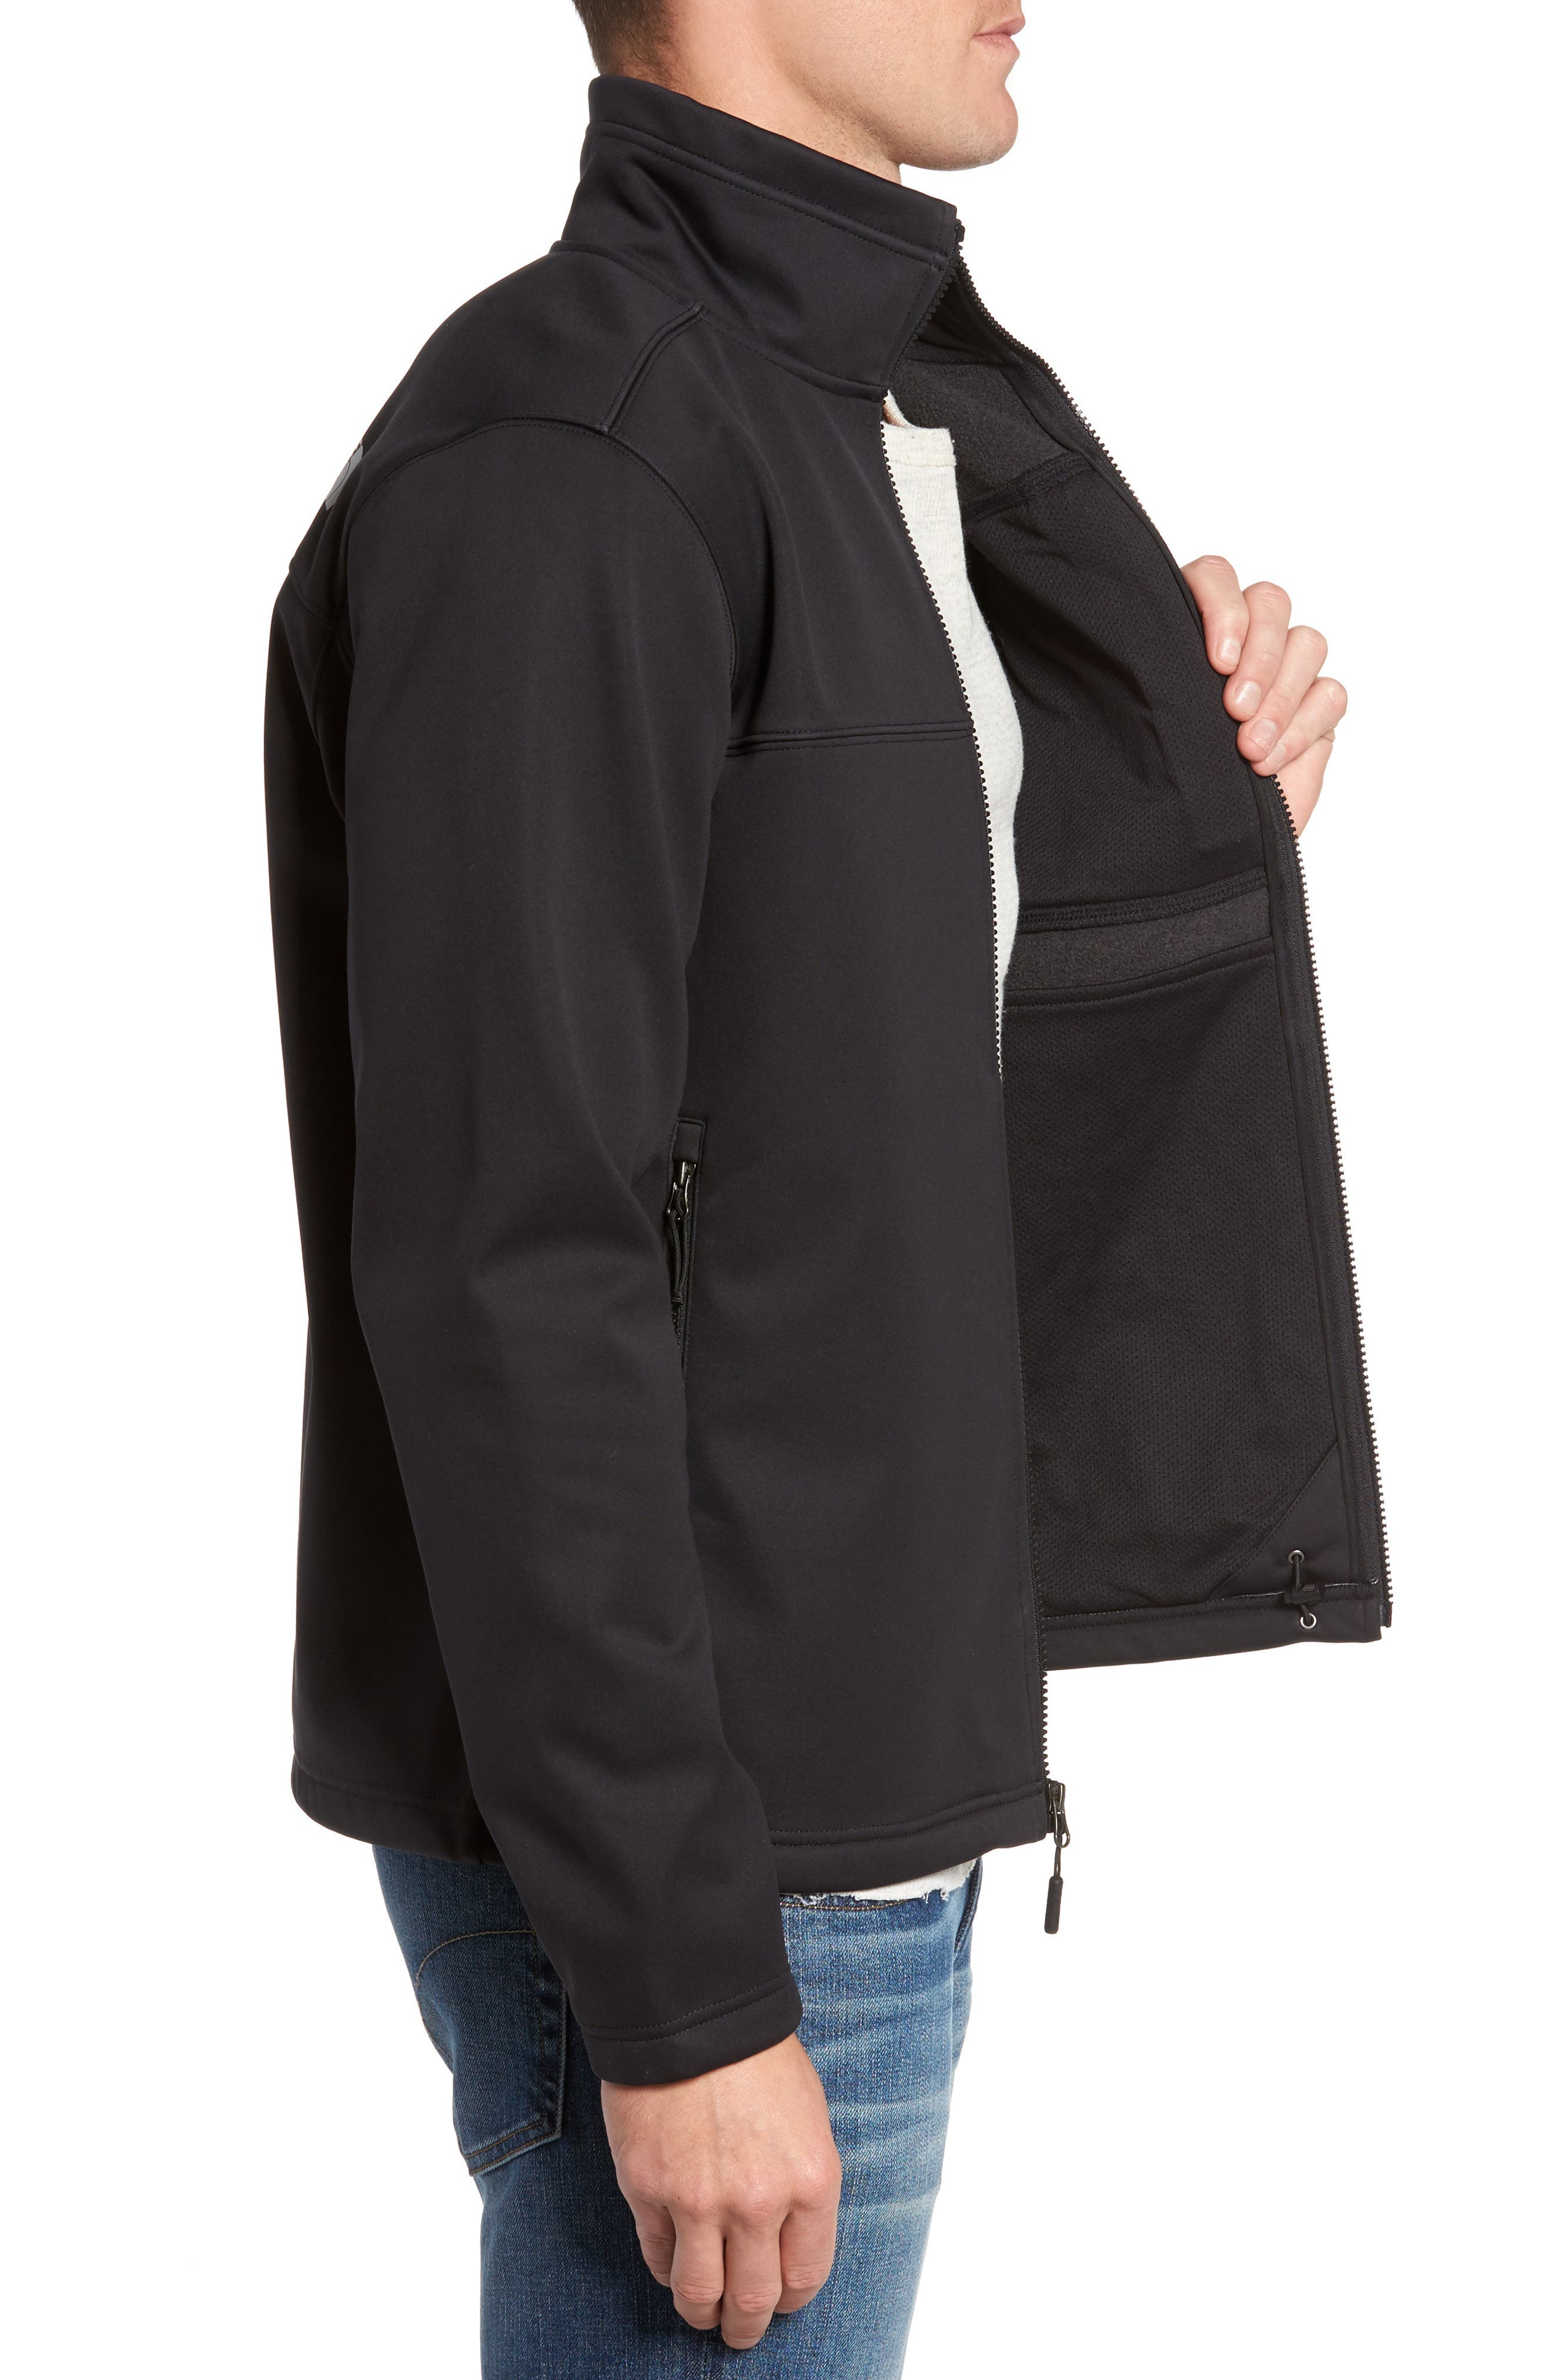 Apex Risor Jacket,                             Alternate thumbnail 3, color,                             Black/ Black